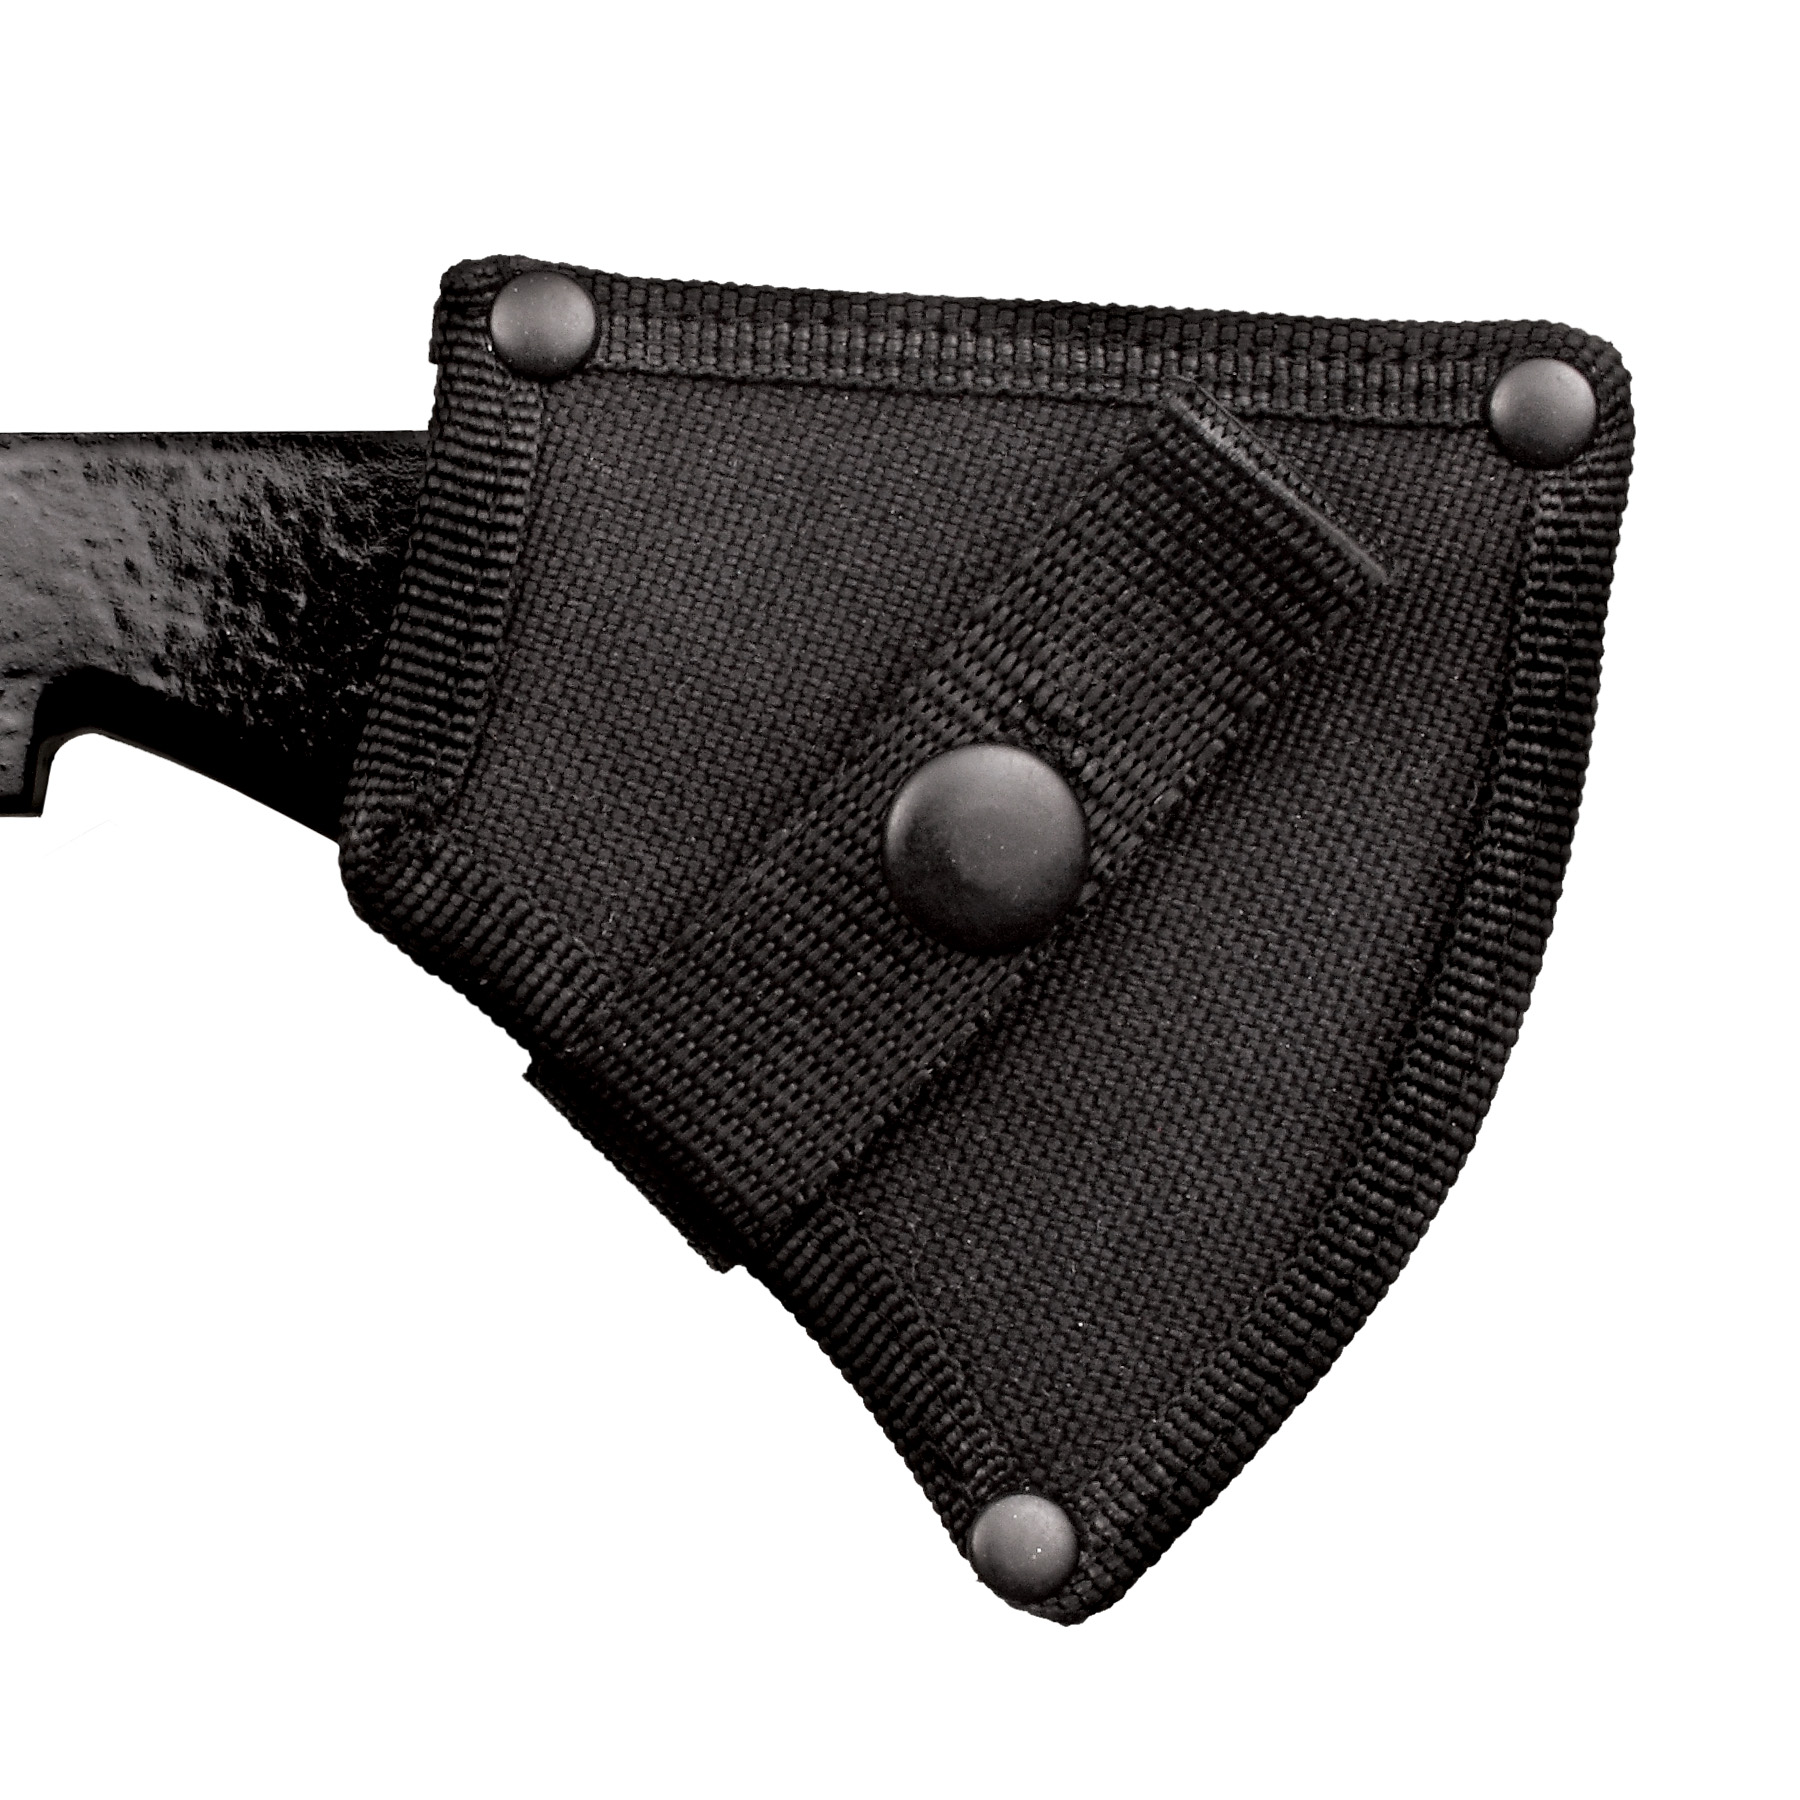 SC90FH - COLD STEEL Frontier Hawk Sheath